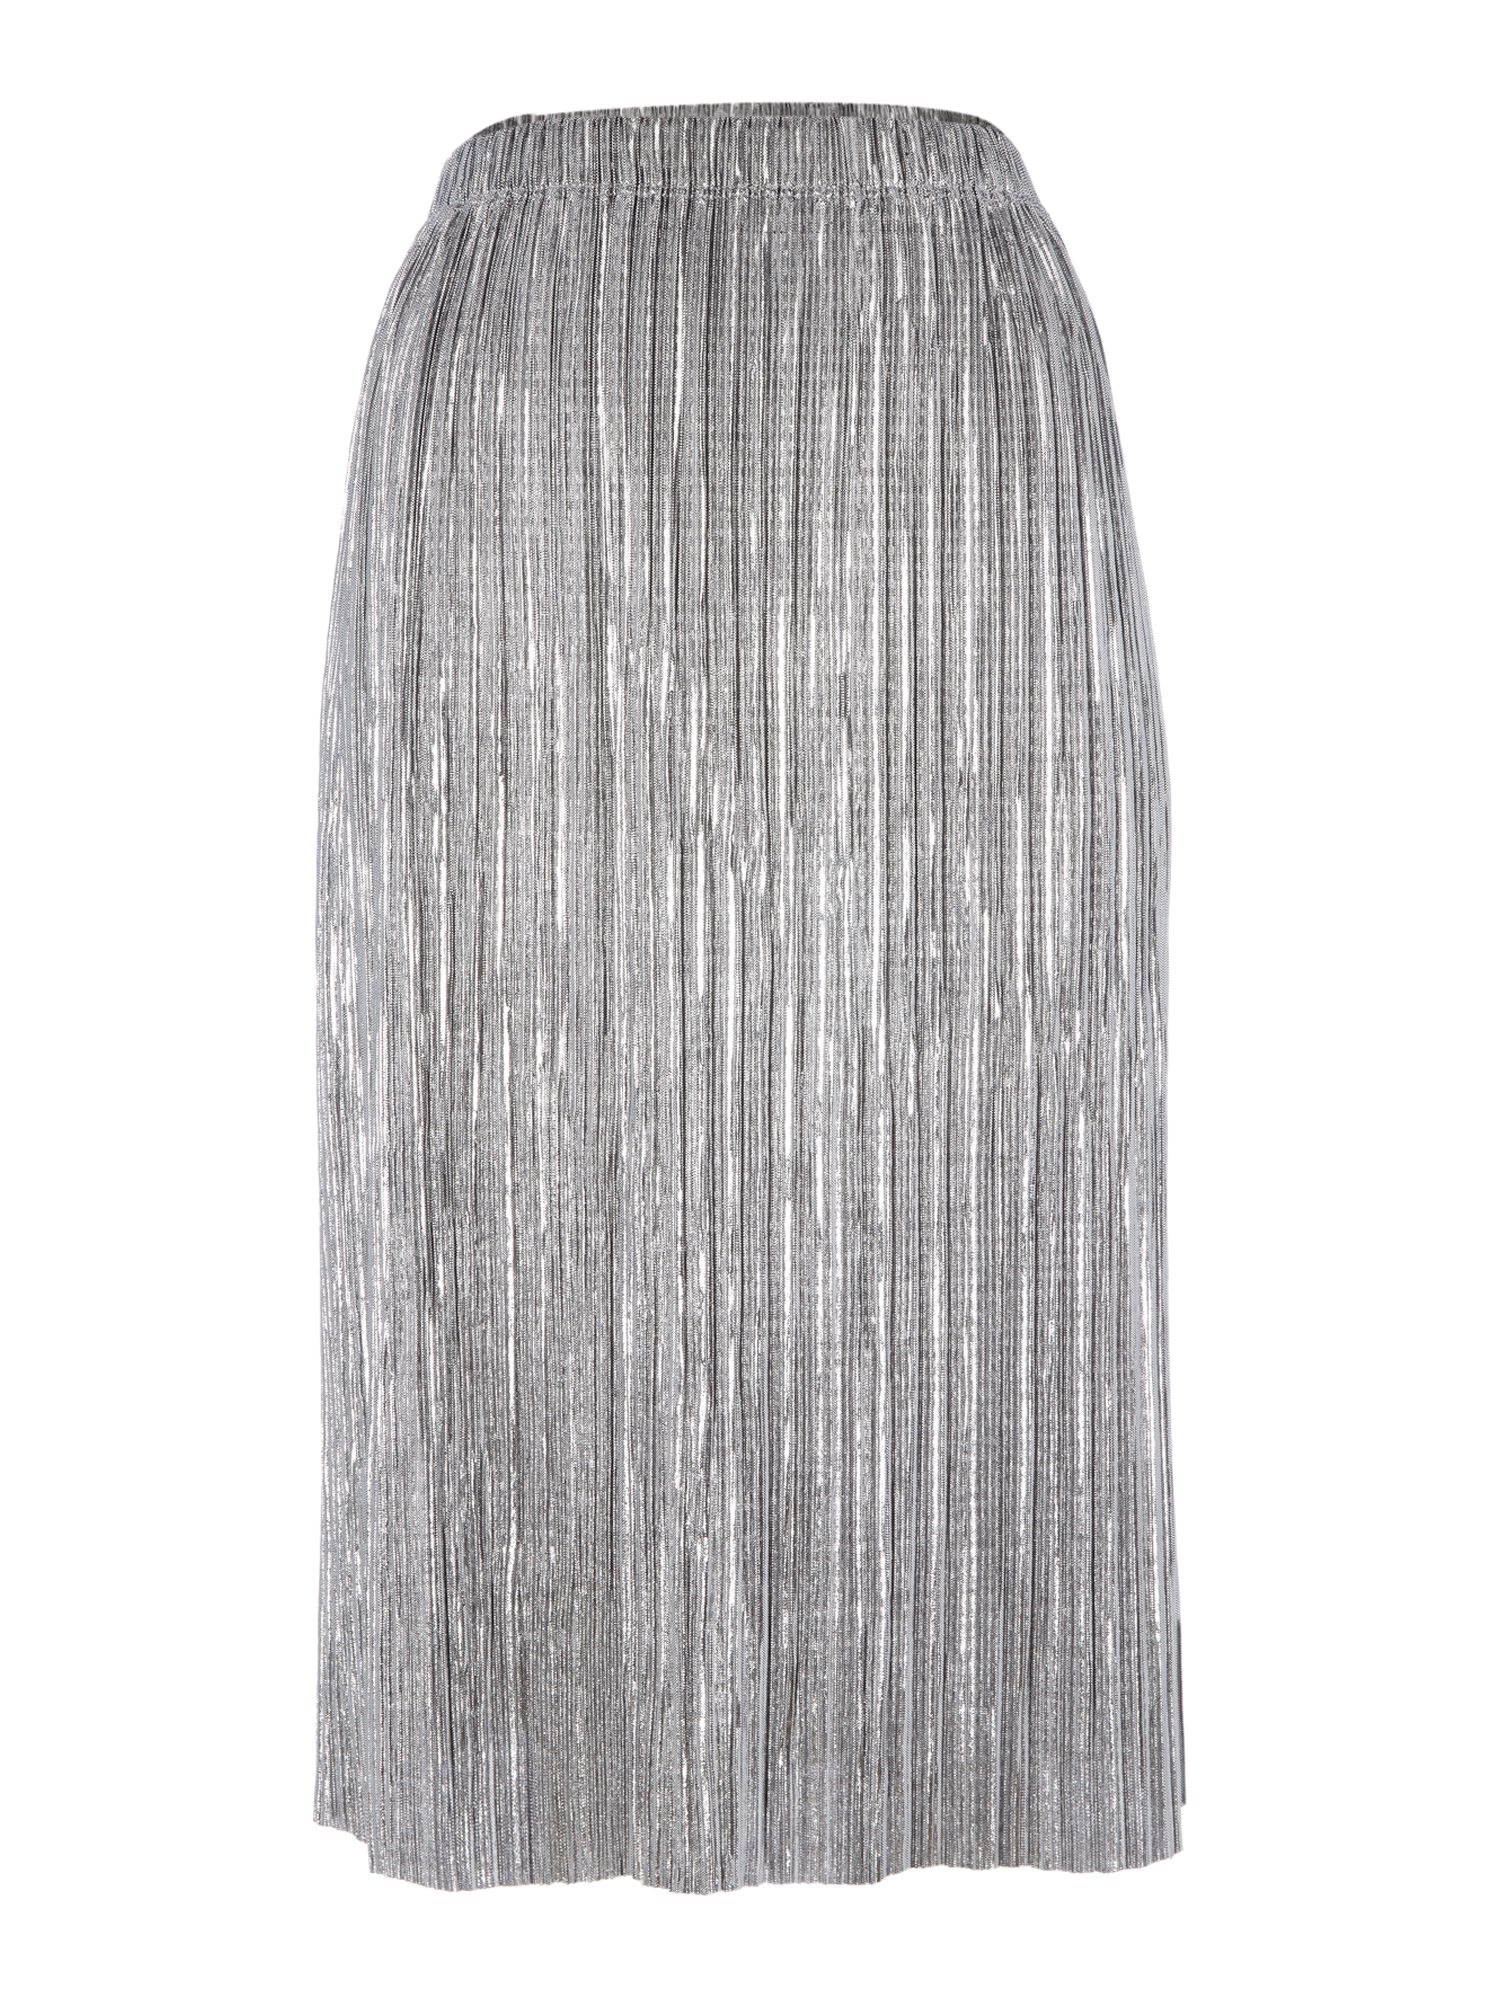 Label Lab Metallic Plisse Skirt, Silver